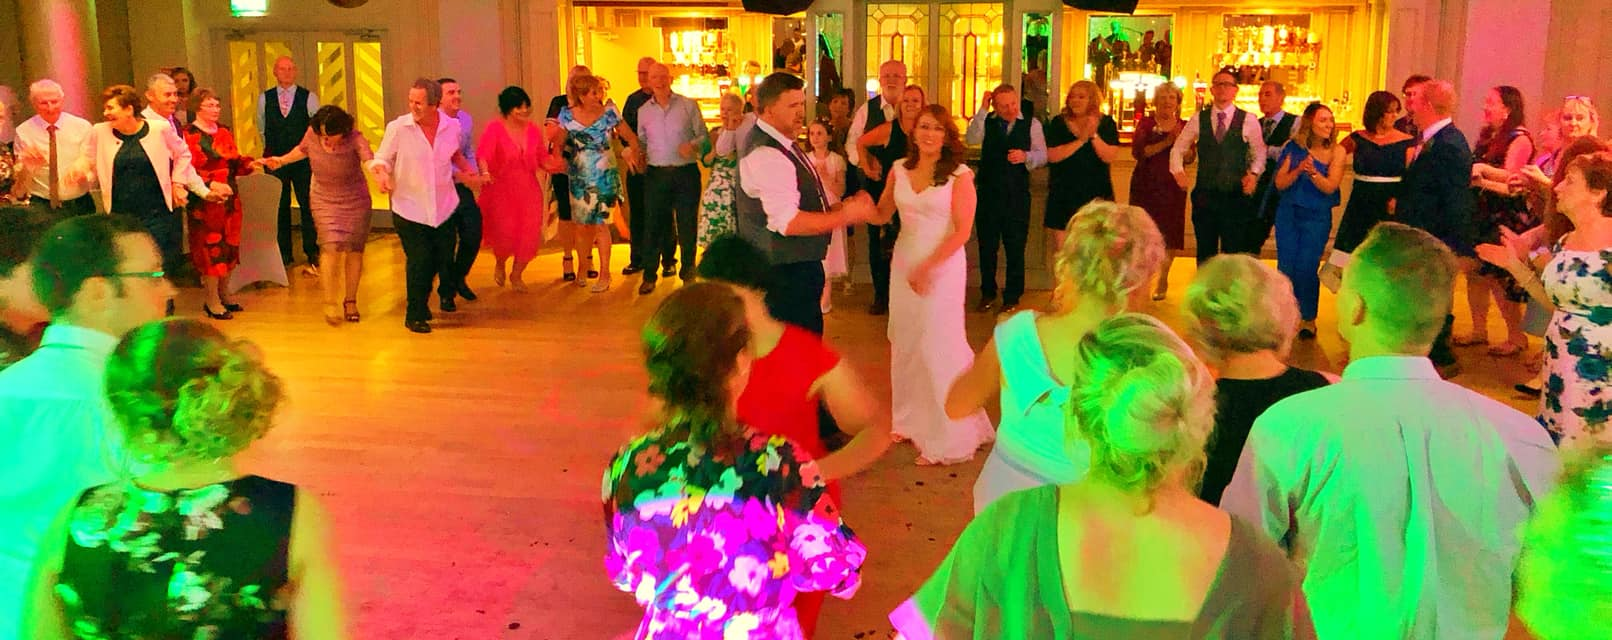 PLAYLIST with Arlene & David at their wedding in Errigal Hotel on the 6th October 2018